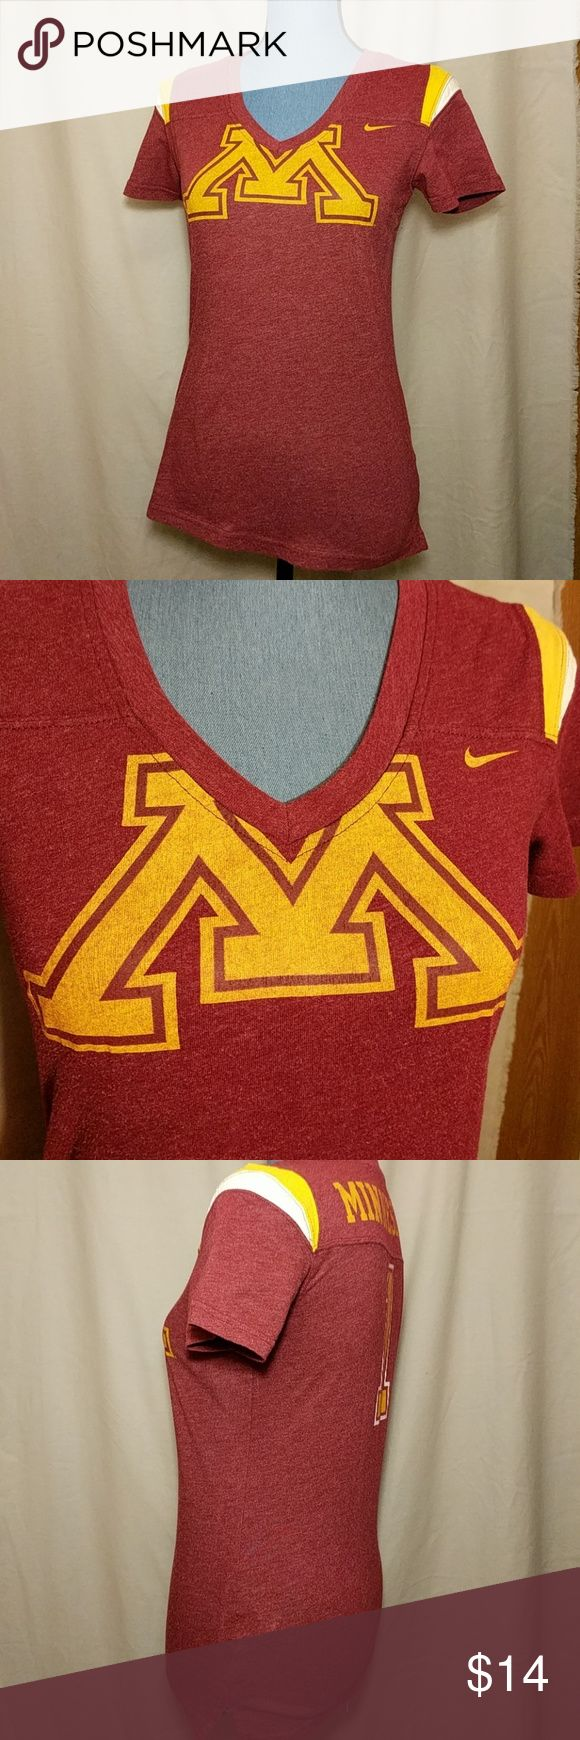 Nike Women's Minnesota Gophers Tee University of Minnesota college team, Minnesota Gophers. Women's size Medium, V-neck short sleeve tee. Colors are maroon and gold. Approximate flat lay measurements include: armpit to armpit is 16.5 inches, shoulder to sleeve is 7 inches, shoulder to bottom of hem is 24 inches. Nike Tops Tees - Short Sleeve